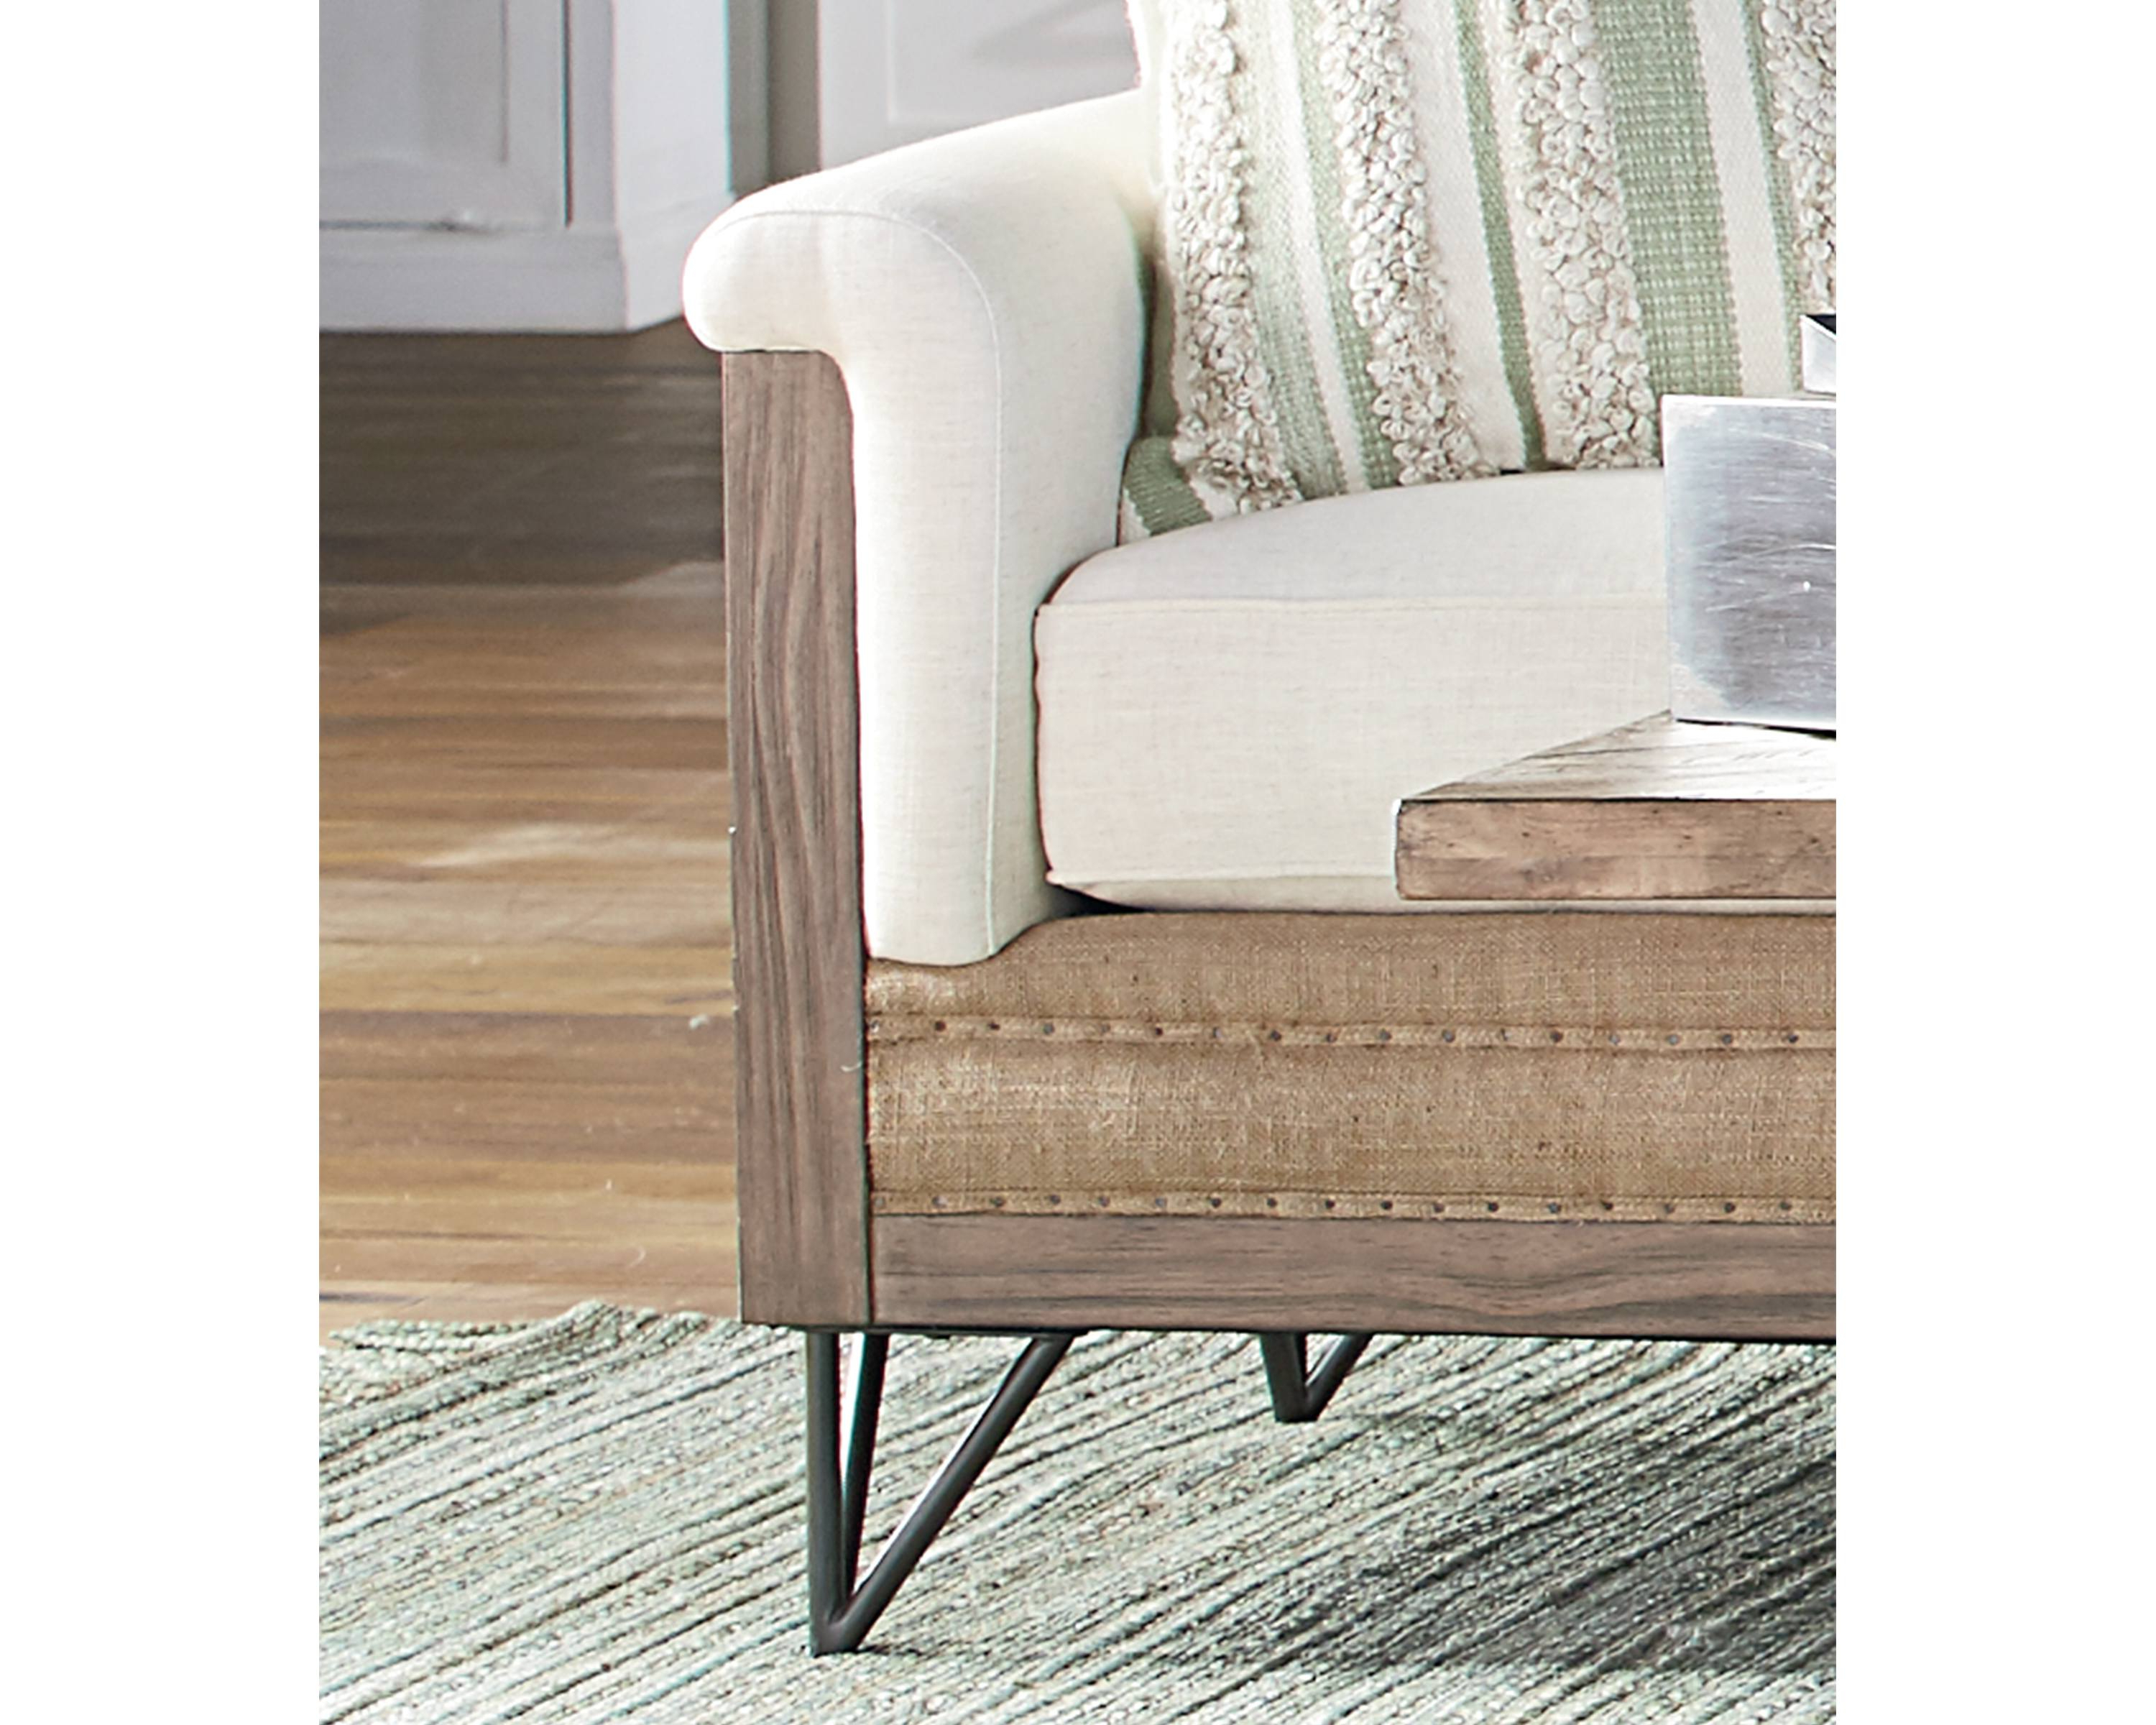 Most Up To Date Paradigm Sofa – Magnolia Home Intended For Magnolia Home Paradigm Sofa Chairs By Joanna Gaines (View 16 of 20)